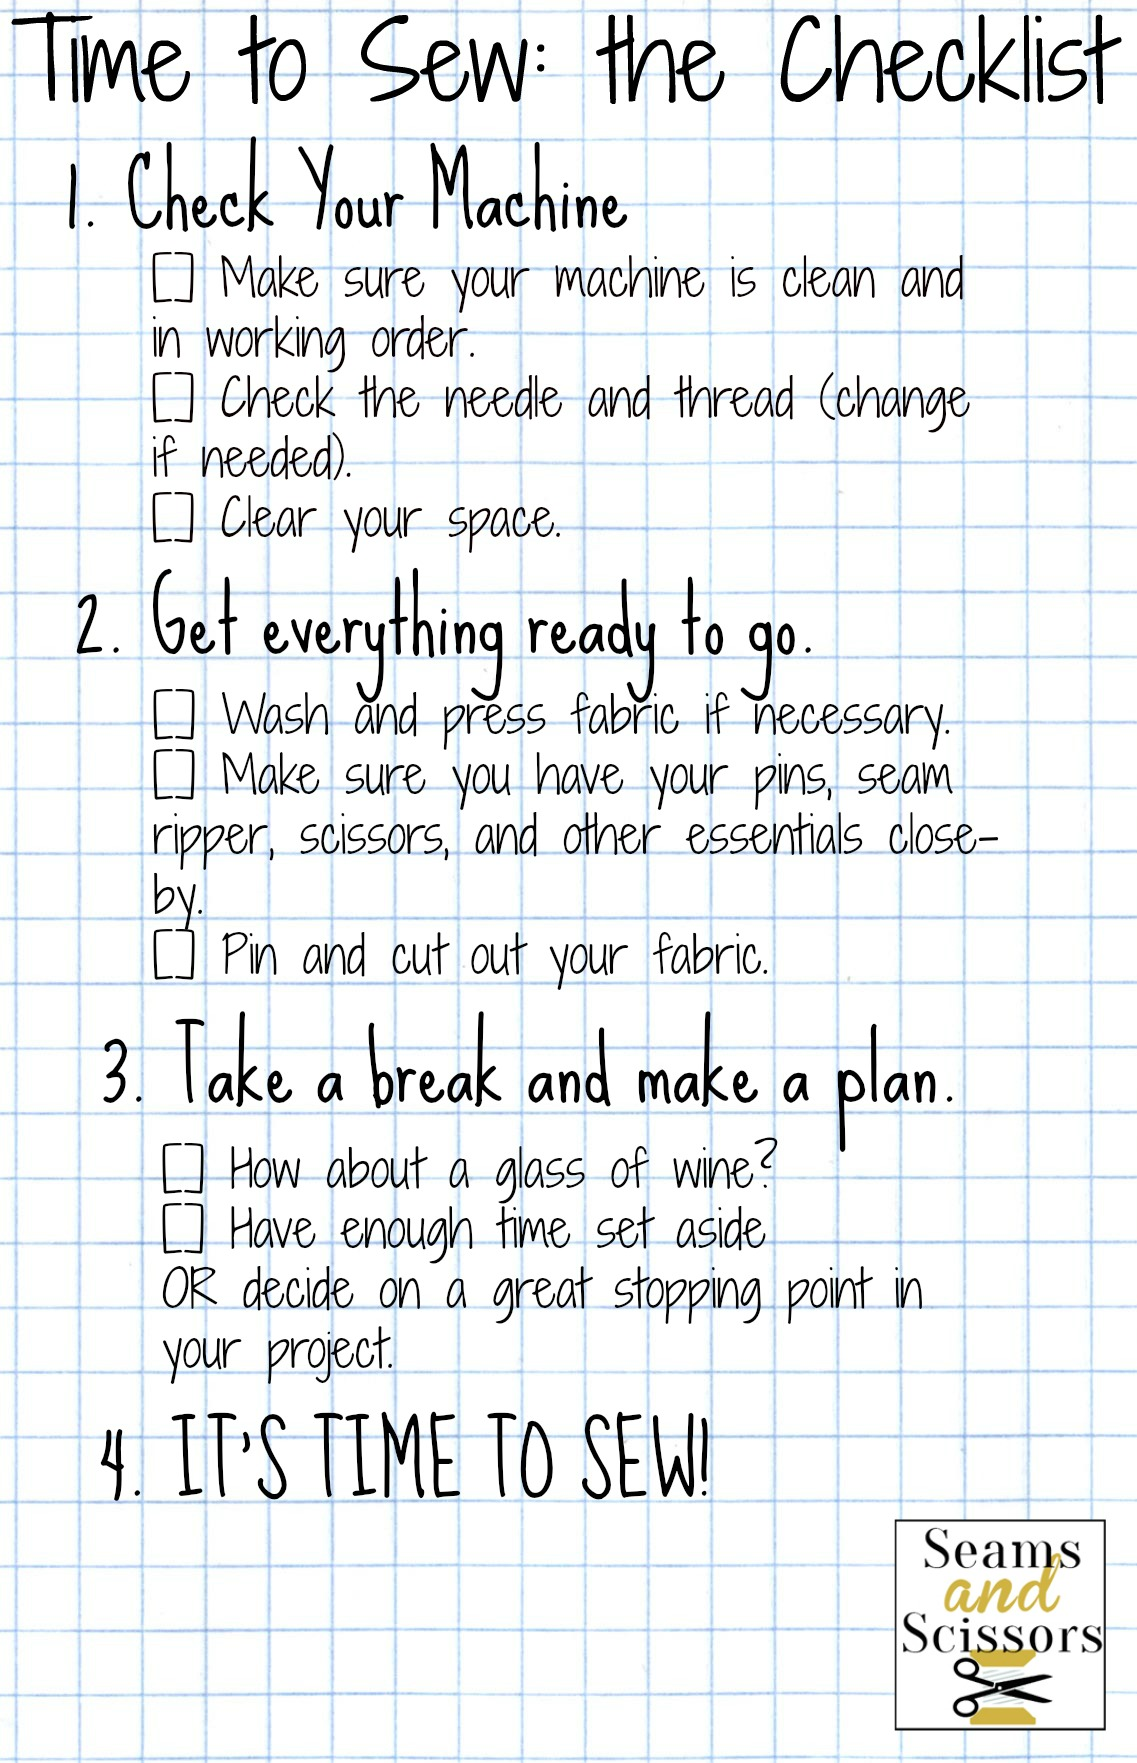 Time to Sew Checklist